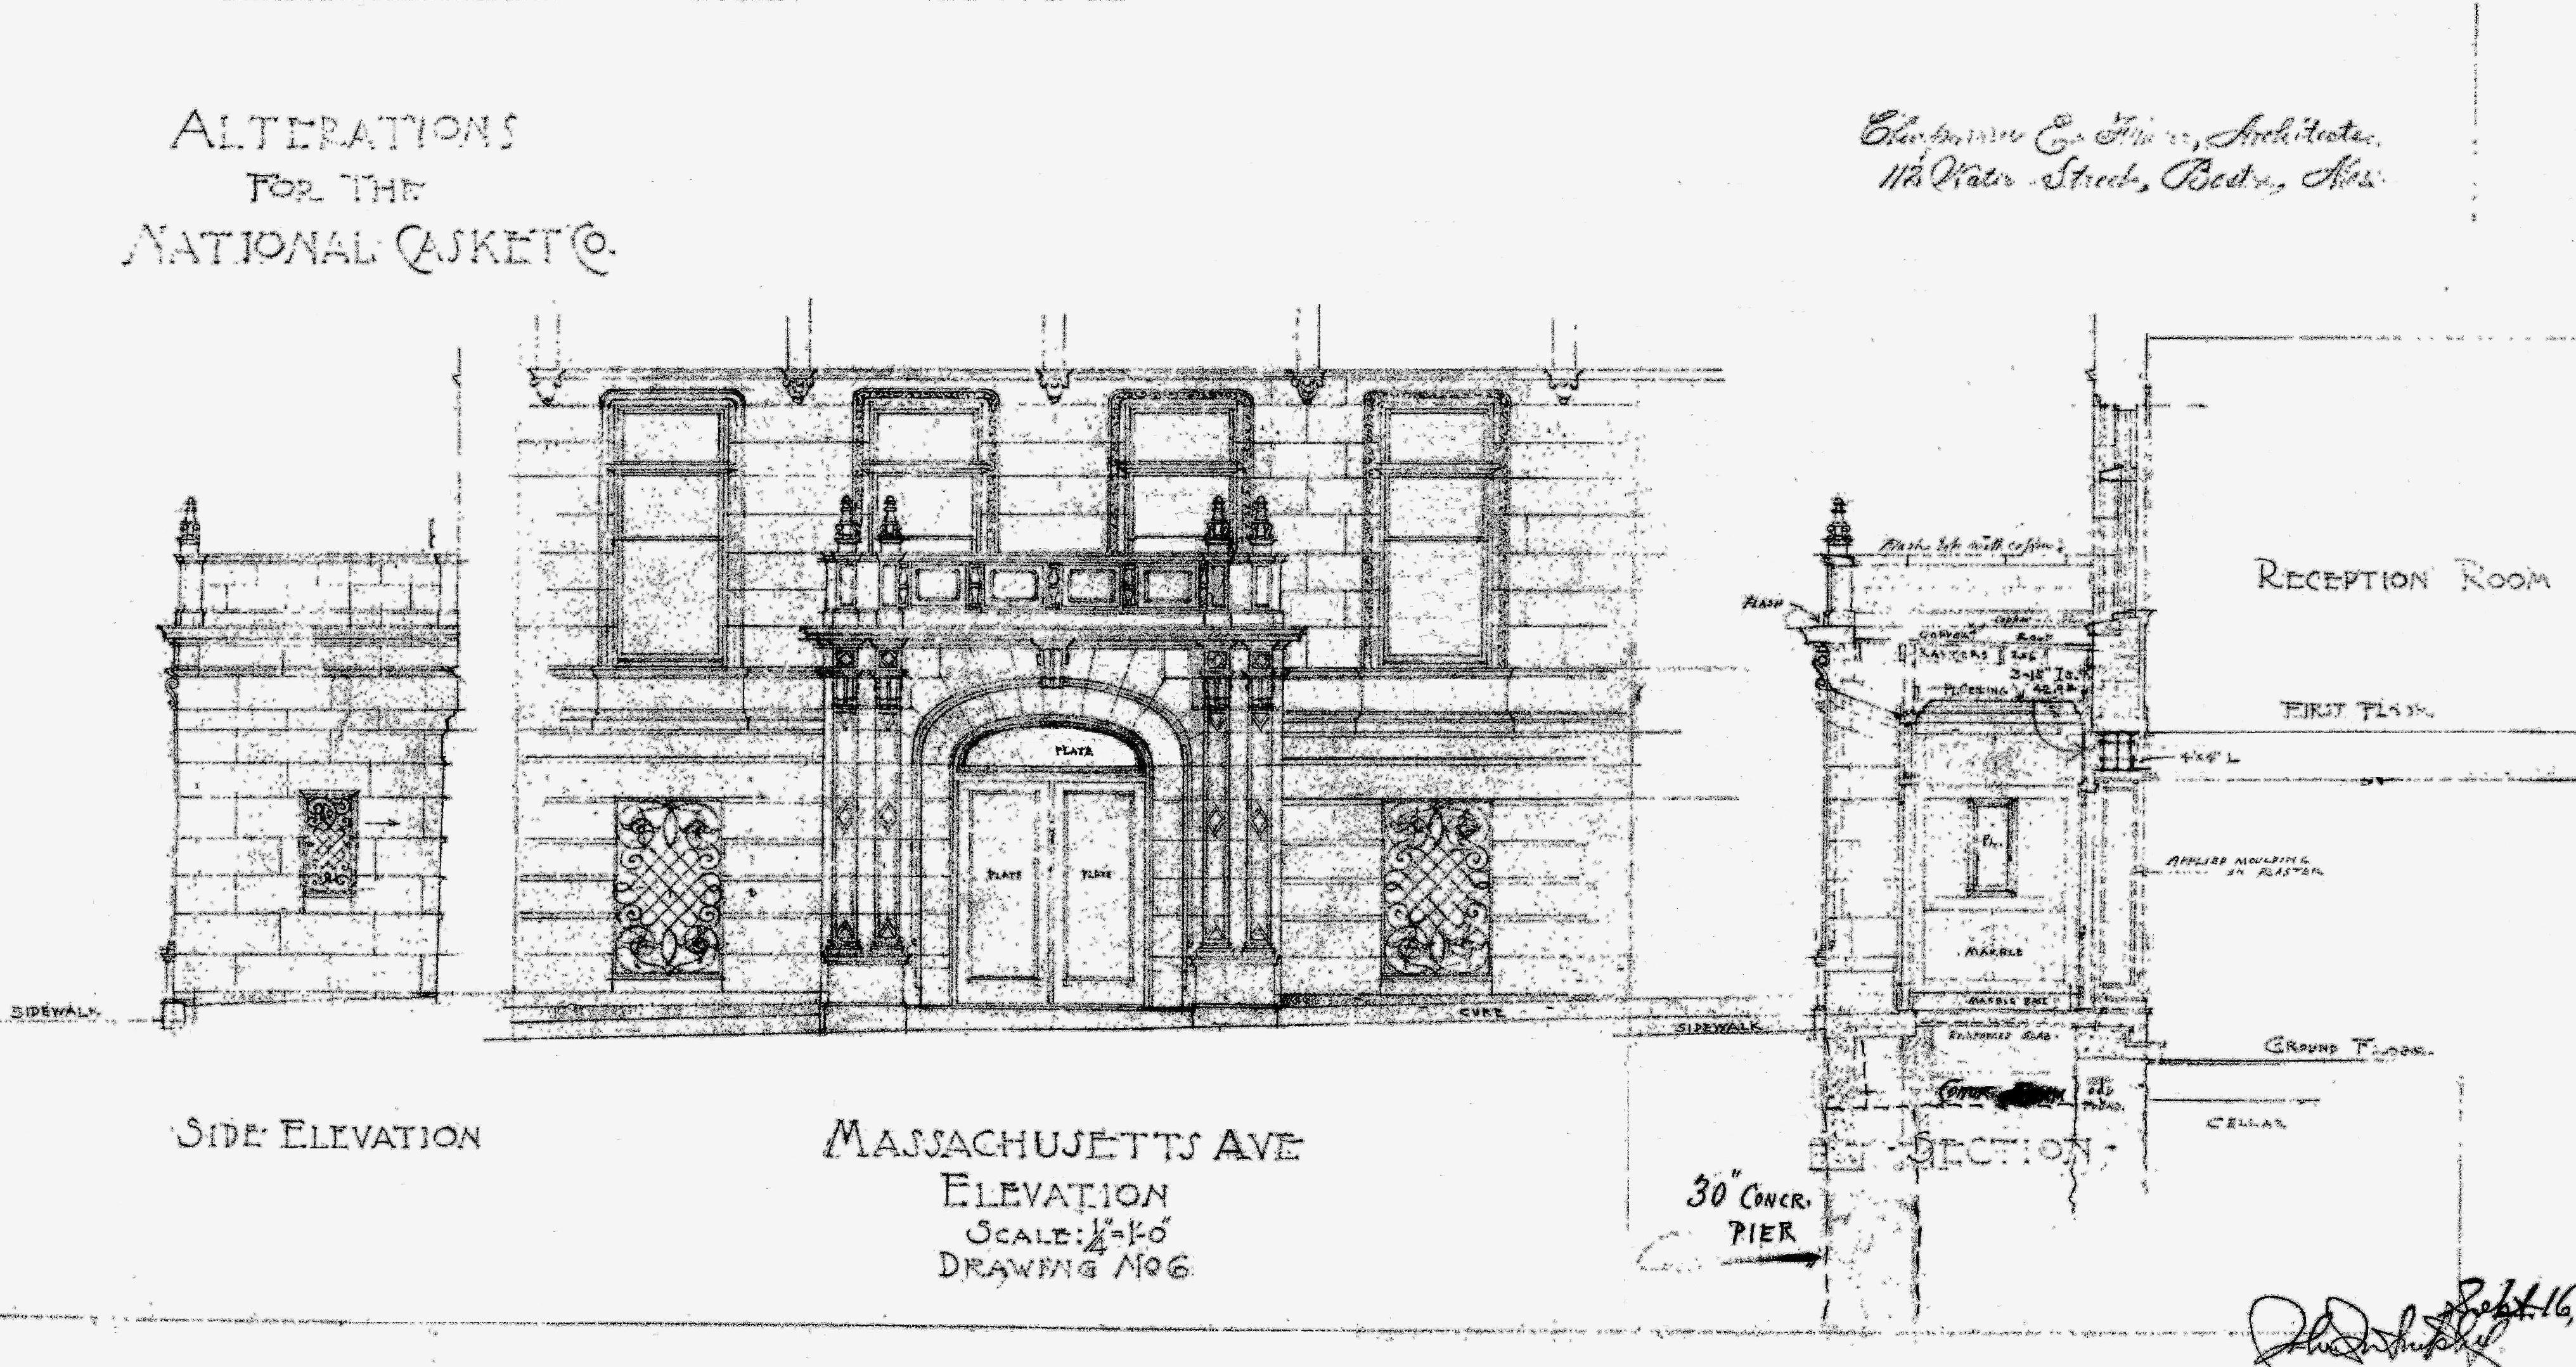 355 commonwealth back bay houses architectural rendering of new massachusetts avenue entrance to 355 commonwealth 1926 by chapman and malvernweather Choice Image